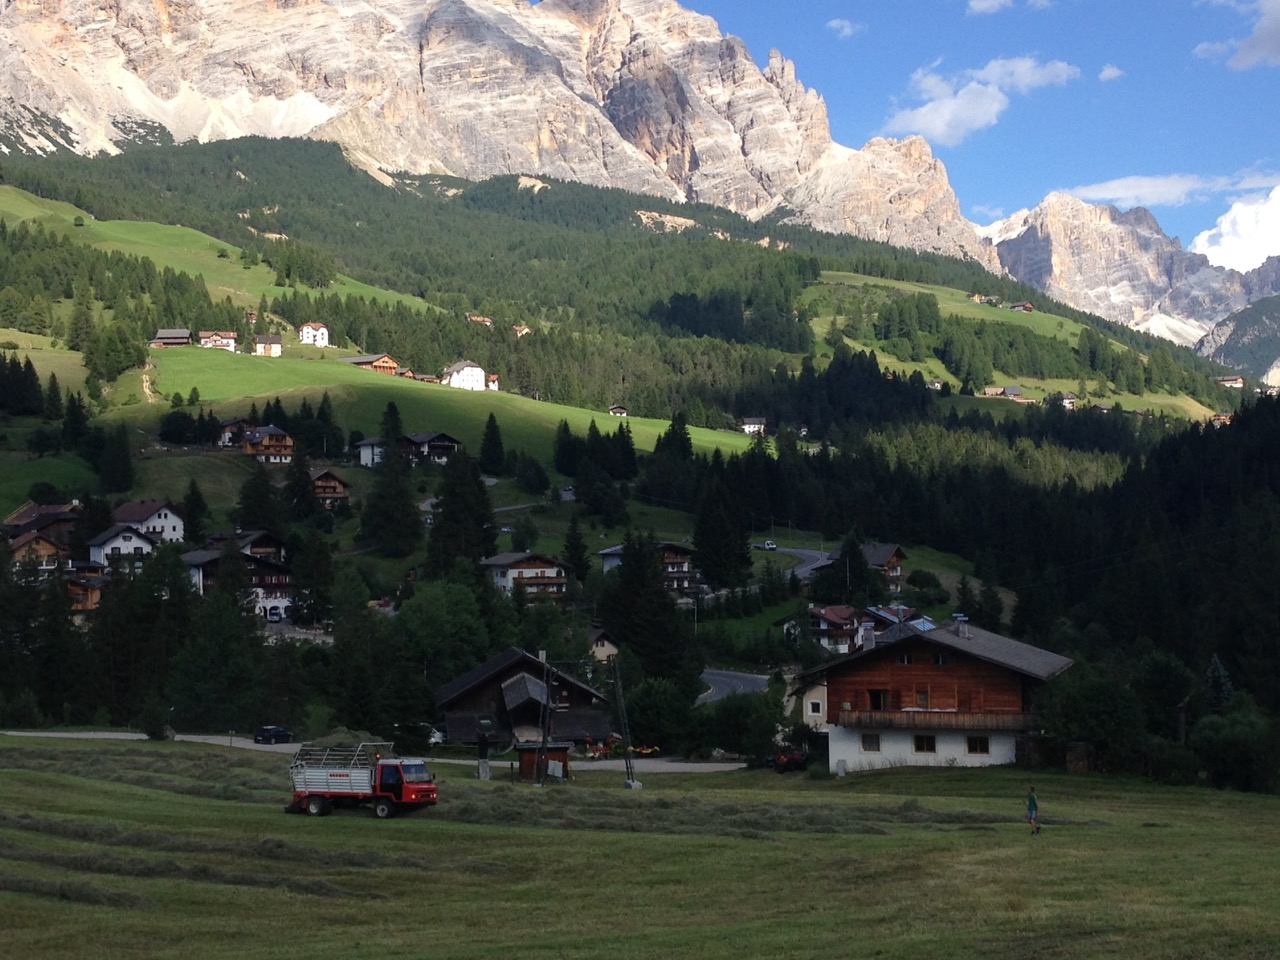 Picture of the Dolomites farmer working in field with mountains in background